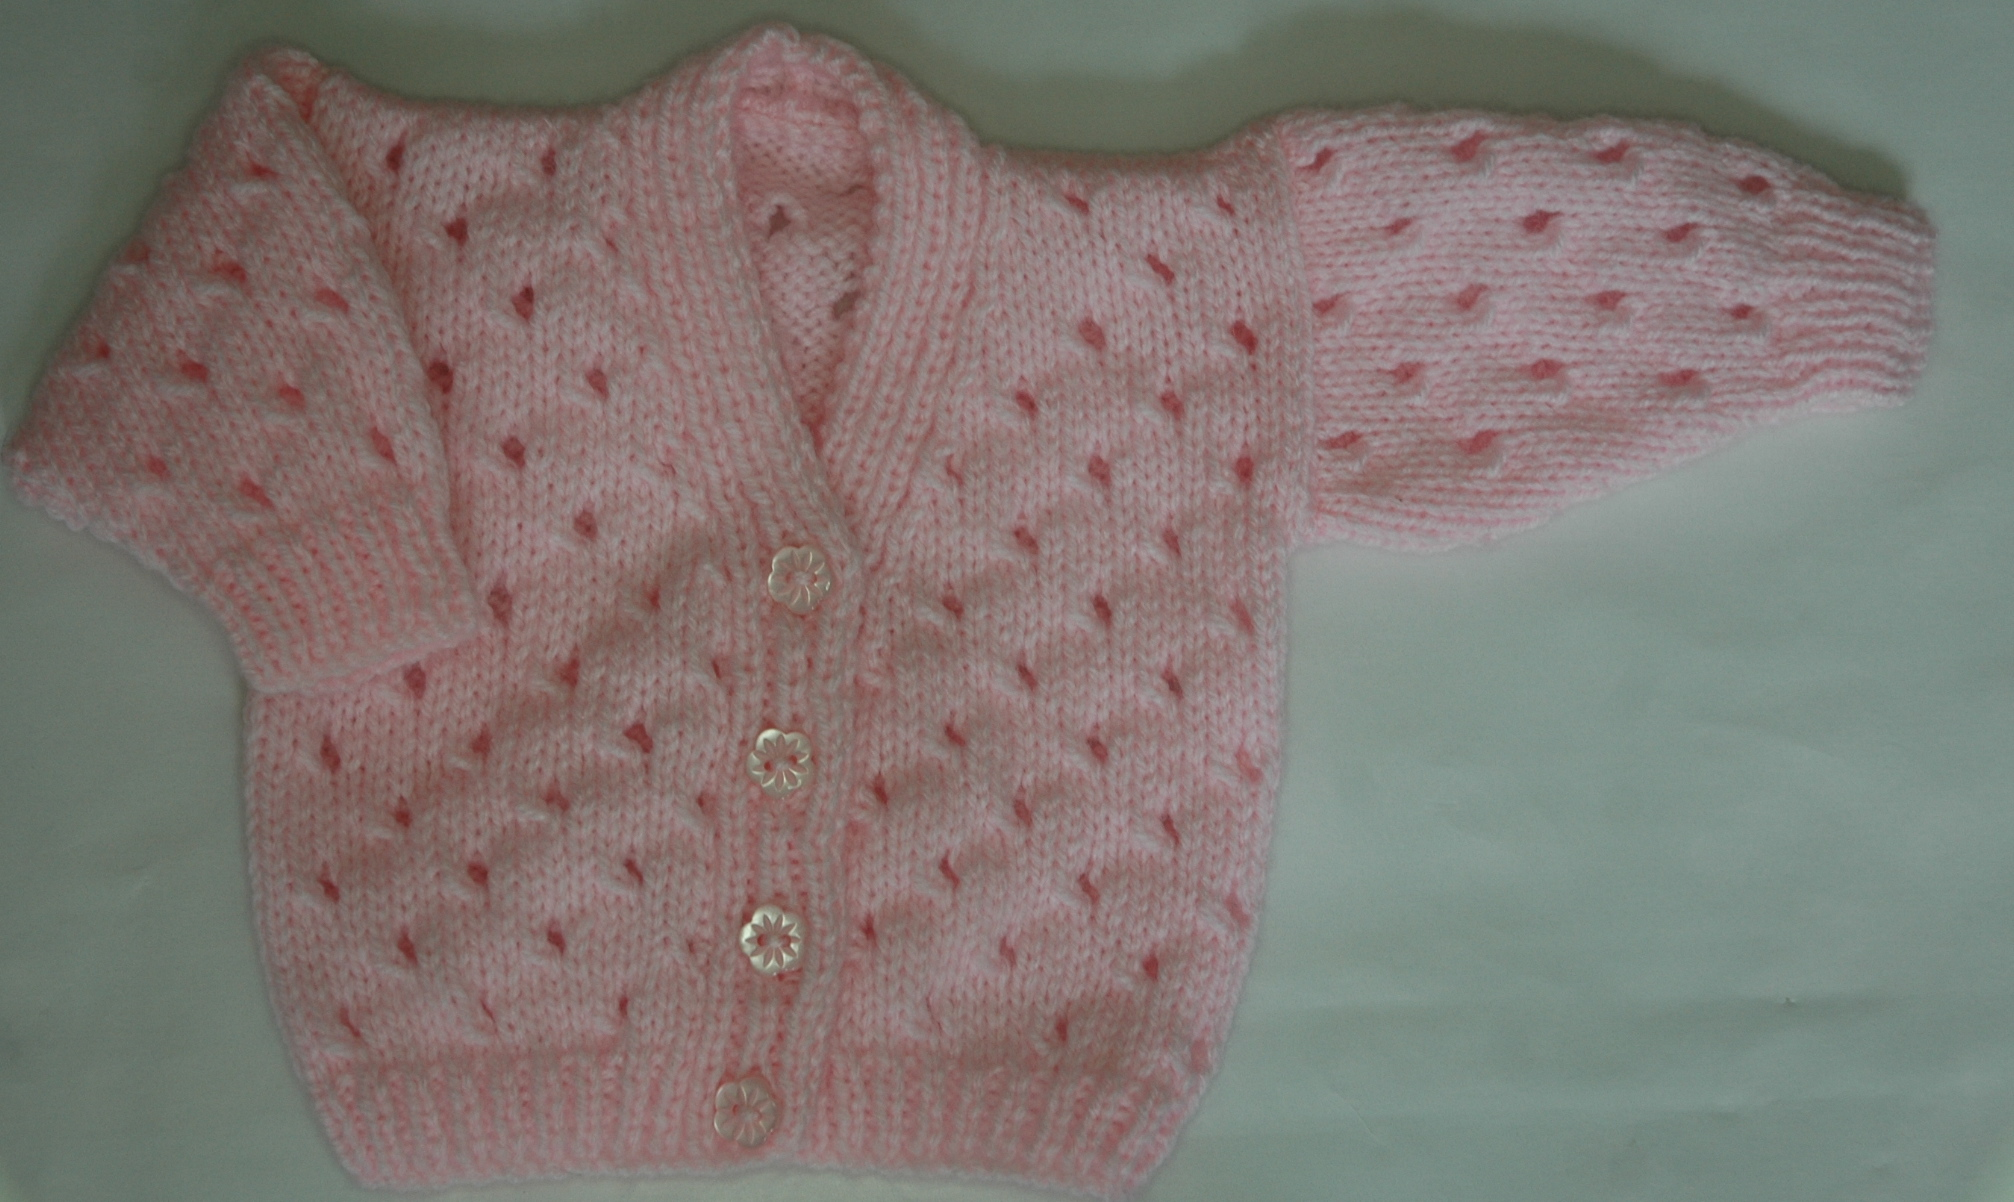 Knitting Pattern Baby Cardigan Free : Knitting Pattern For Baby Cardigan Uk - Cardigan With Buttons